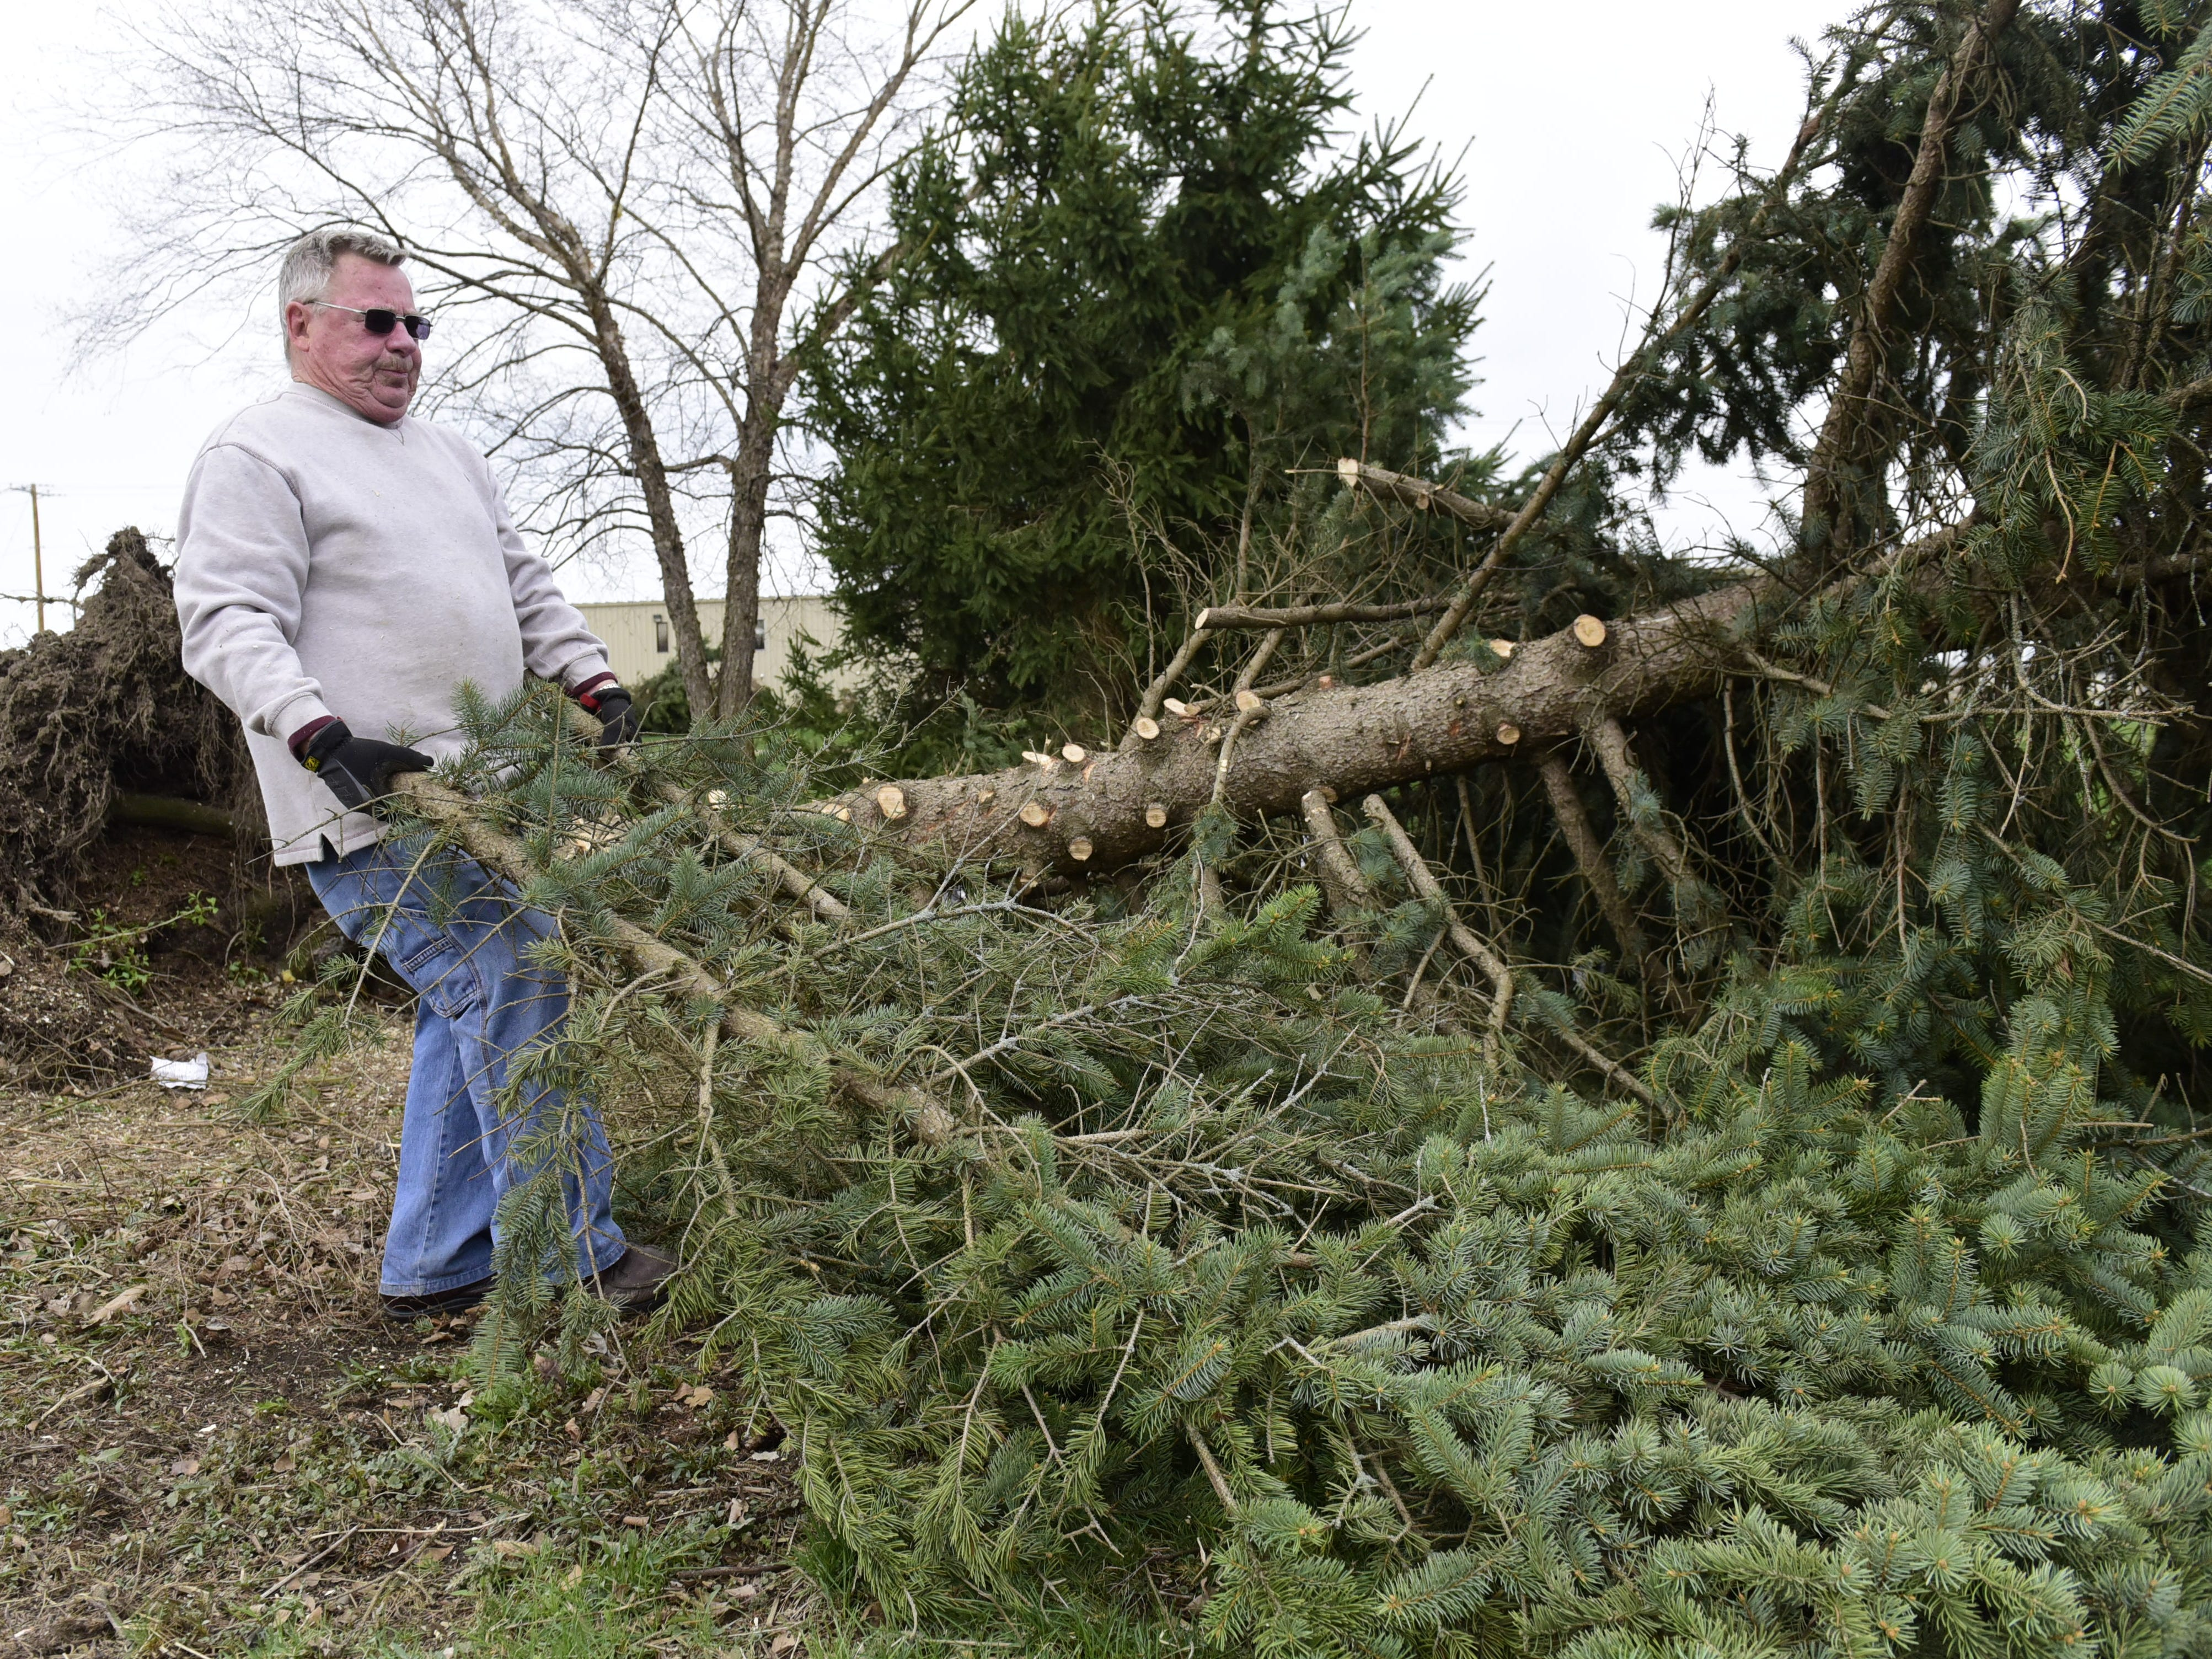 Ed Grove pulls a few fallen tree branches Tuesday behind a rental property near the intersection of Wareham Road and Technology Parkway in Shelby.